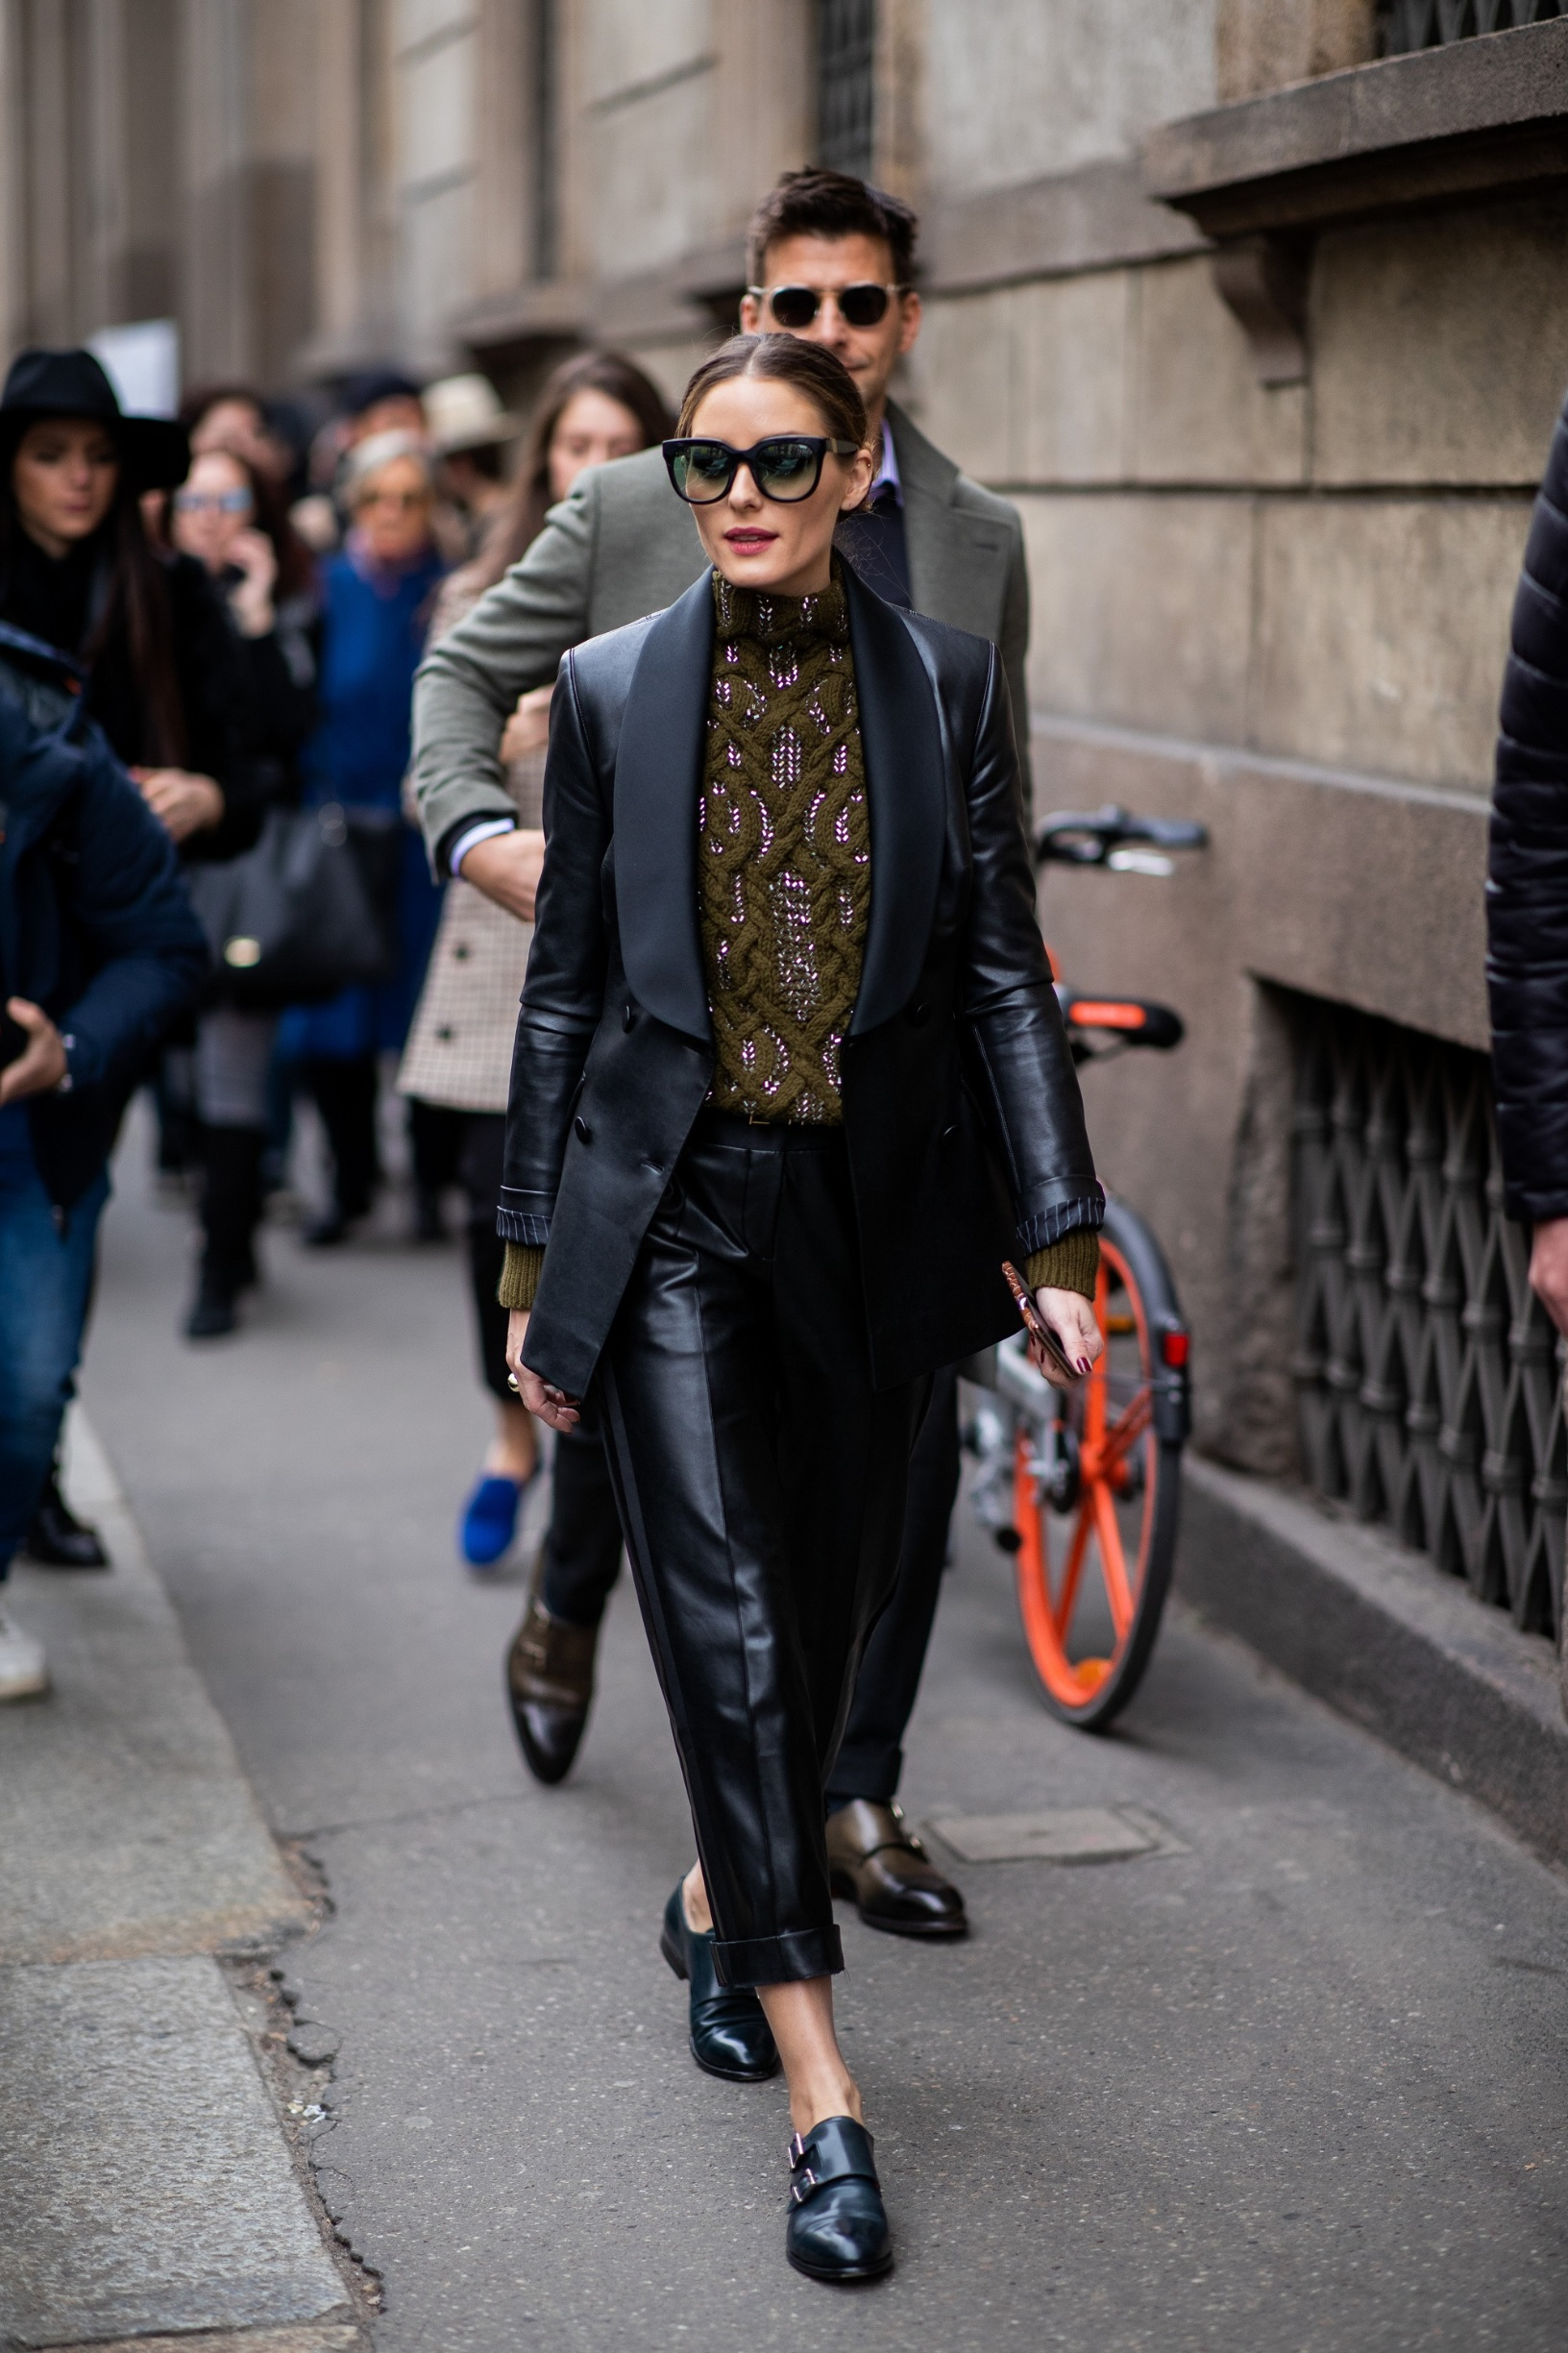 MILAN, ITALY - FEBRUARY 23: Olivia Palermo attends the Ermanno Scervino show at Milan Fashion Week Autumn/Winter 2019/20 on February 23, 2019 in Milan, Italy.  (Photo by Christian Vierig/Getty Images for Ermanno Scervino)